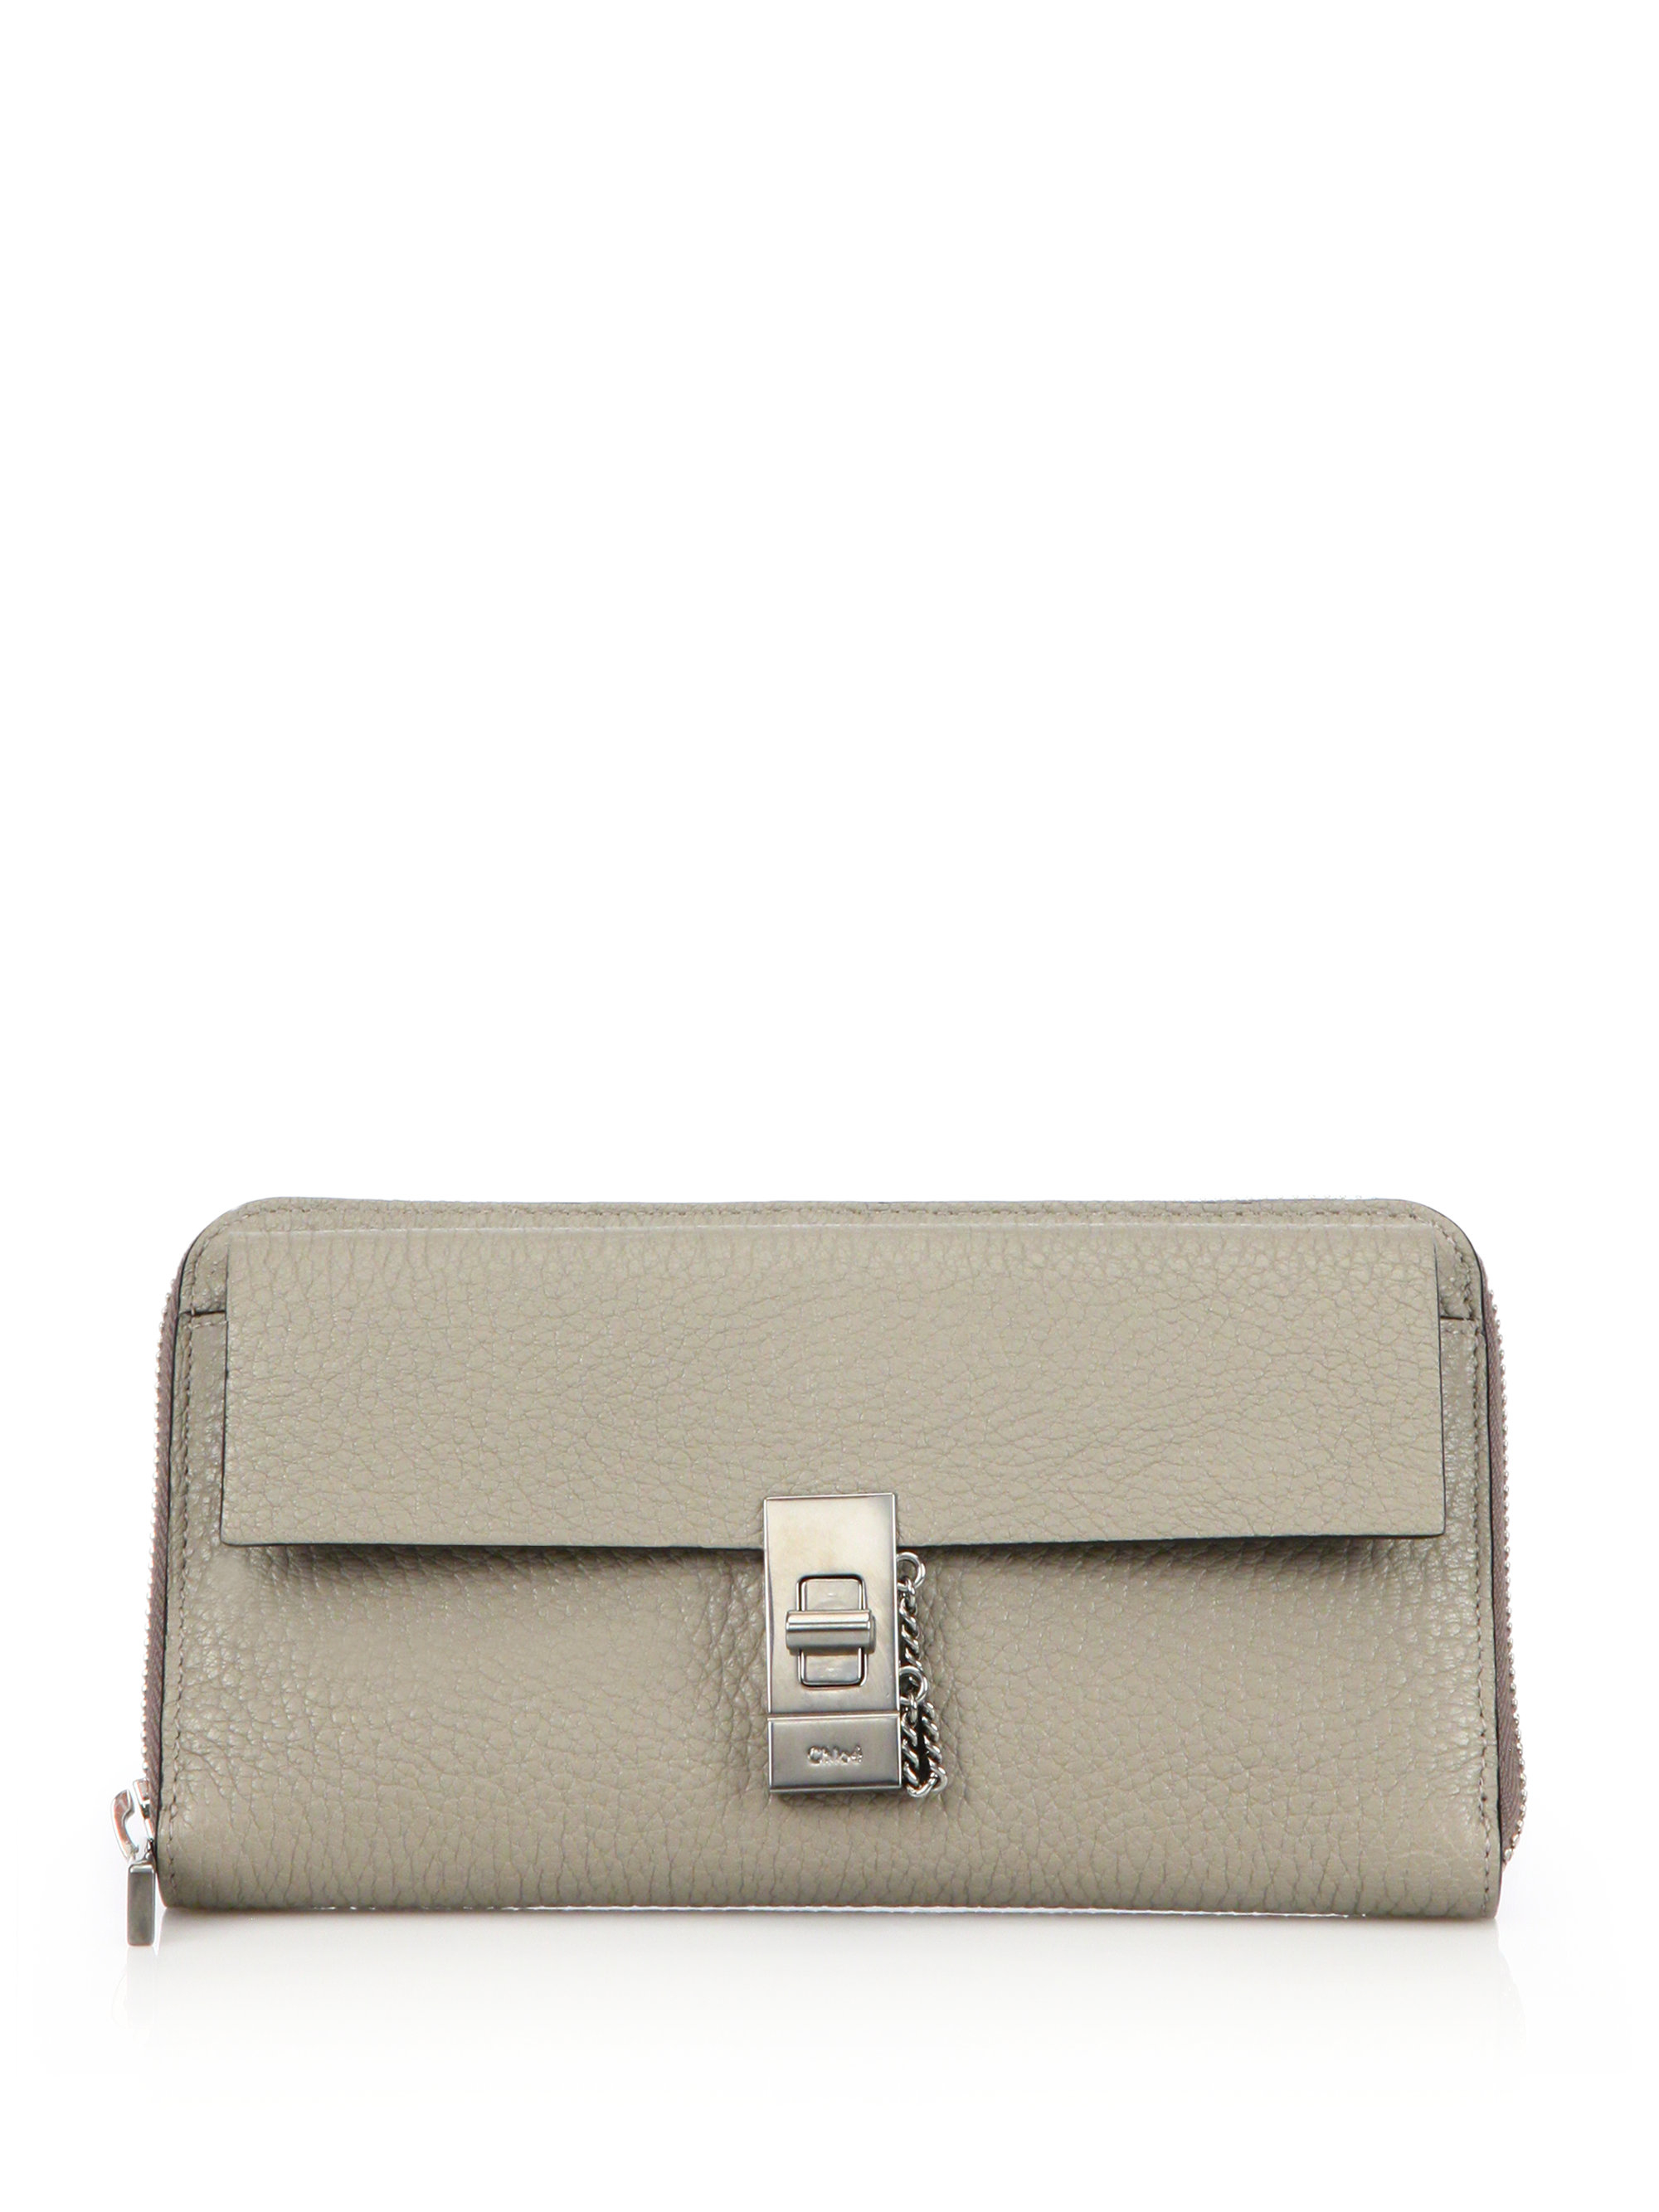 chloe saddle messenger bag - Chlo�� Drew Long Leather Zip Wallet in Gray (motty grey) | Lyst